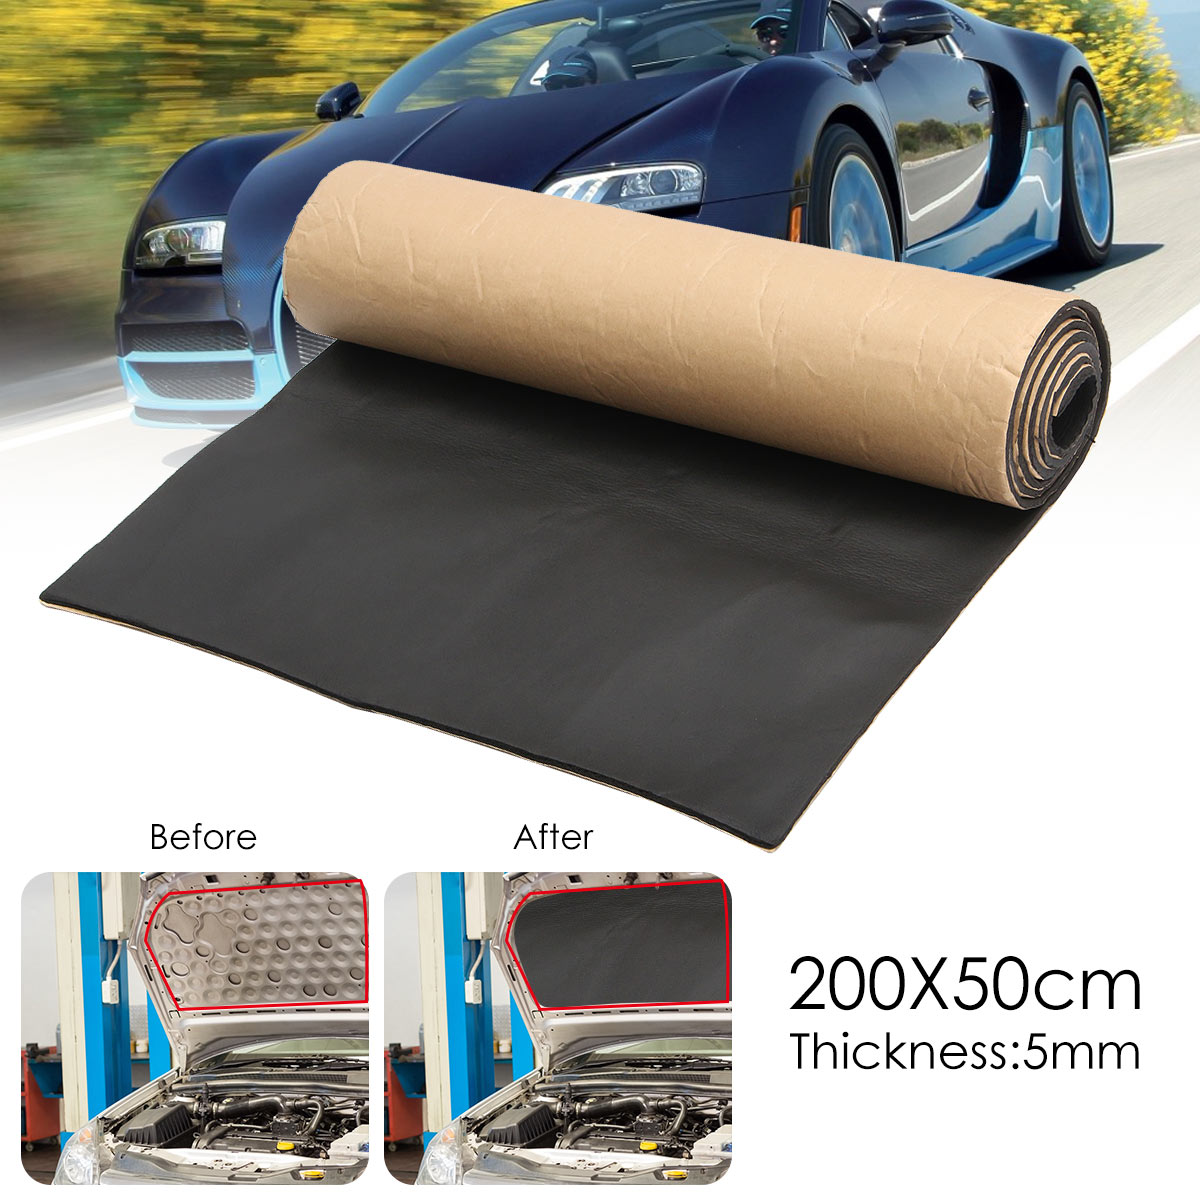 200cmx50cm 5mm Car Sound Proofing Cotton Rubber Deadening Anti-noise Sound Insulation Cotton Heat Closed Cell Foam Self Adhesive